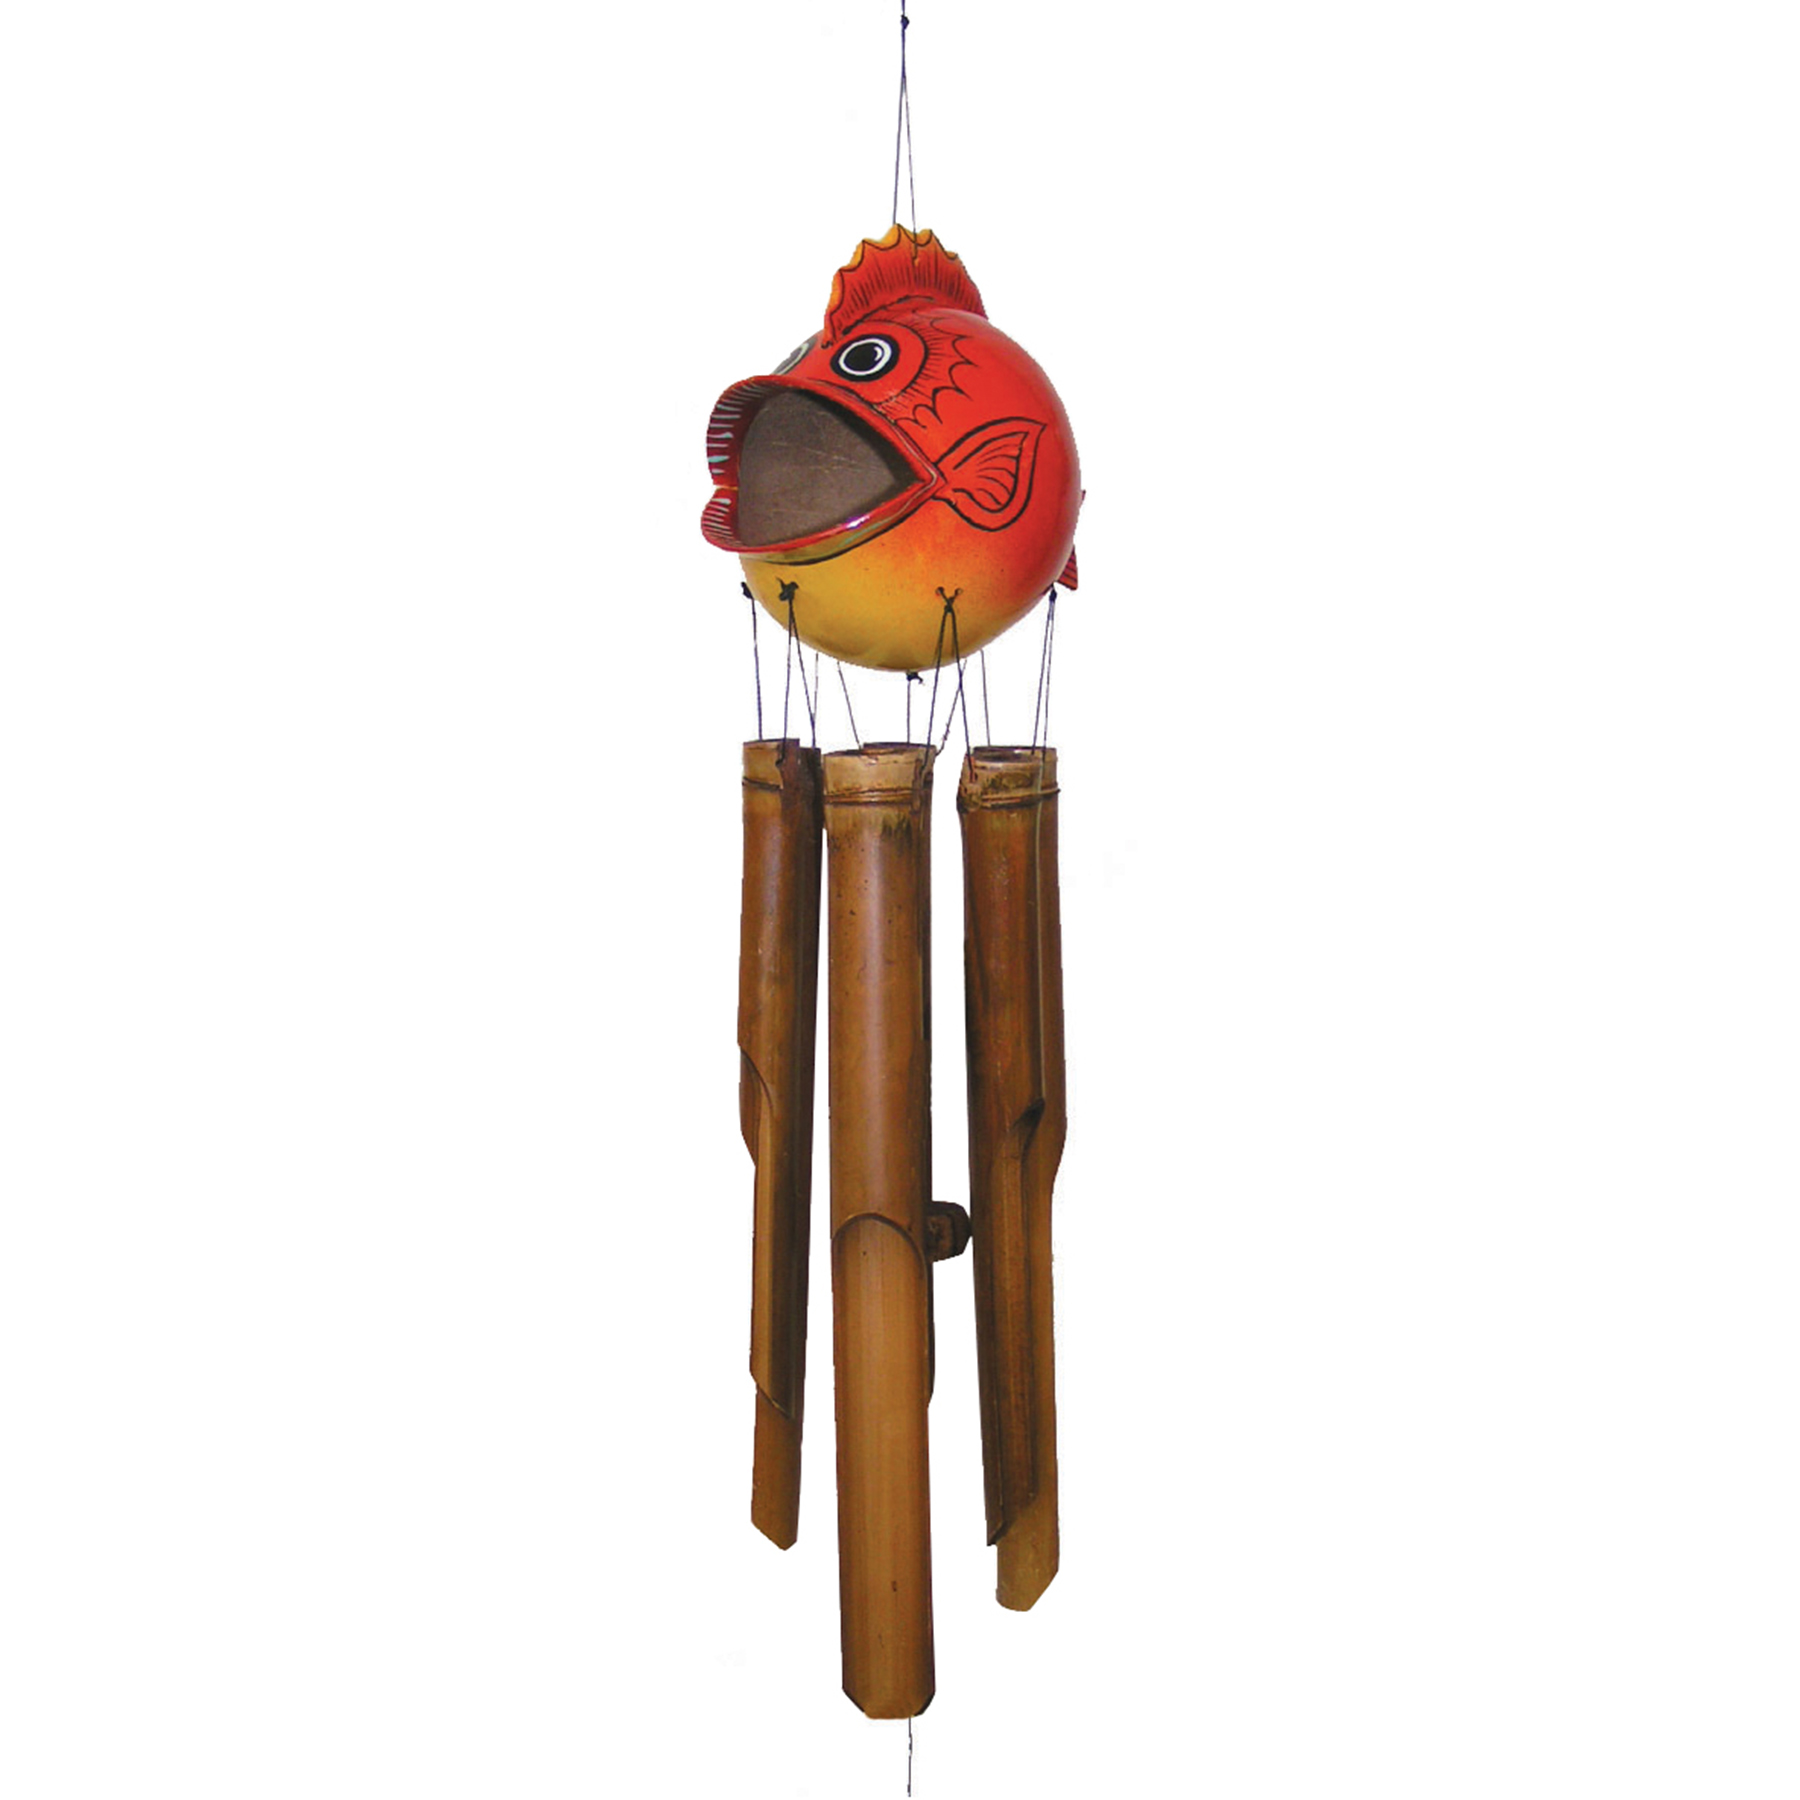 102MB - Blow Fish Bamboo Wind Chime